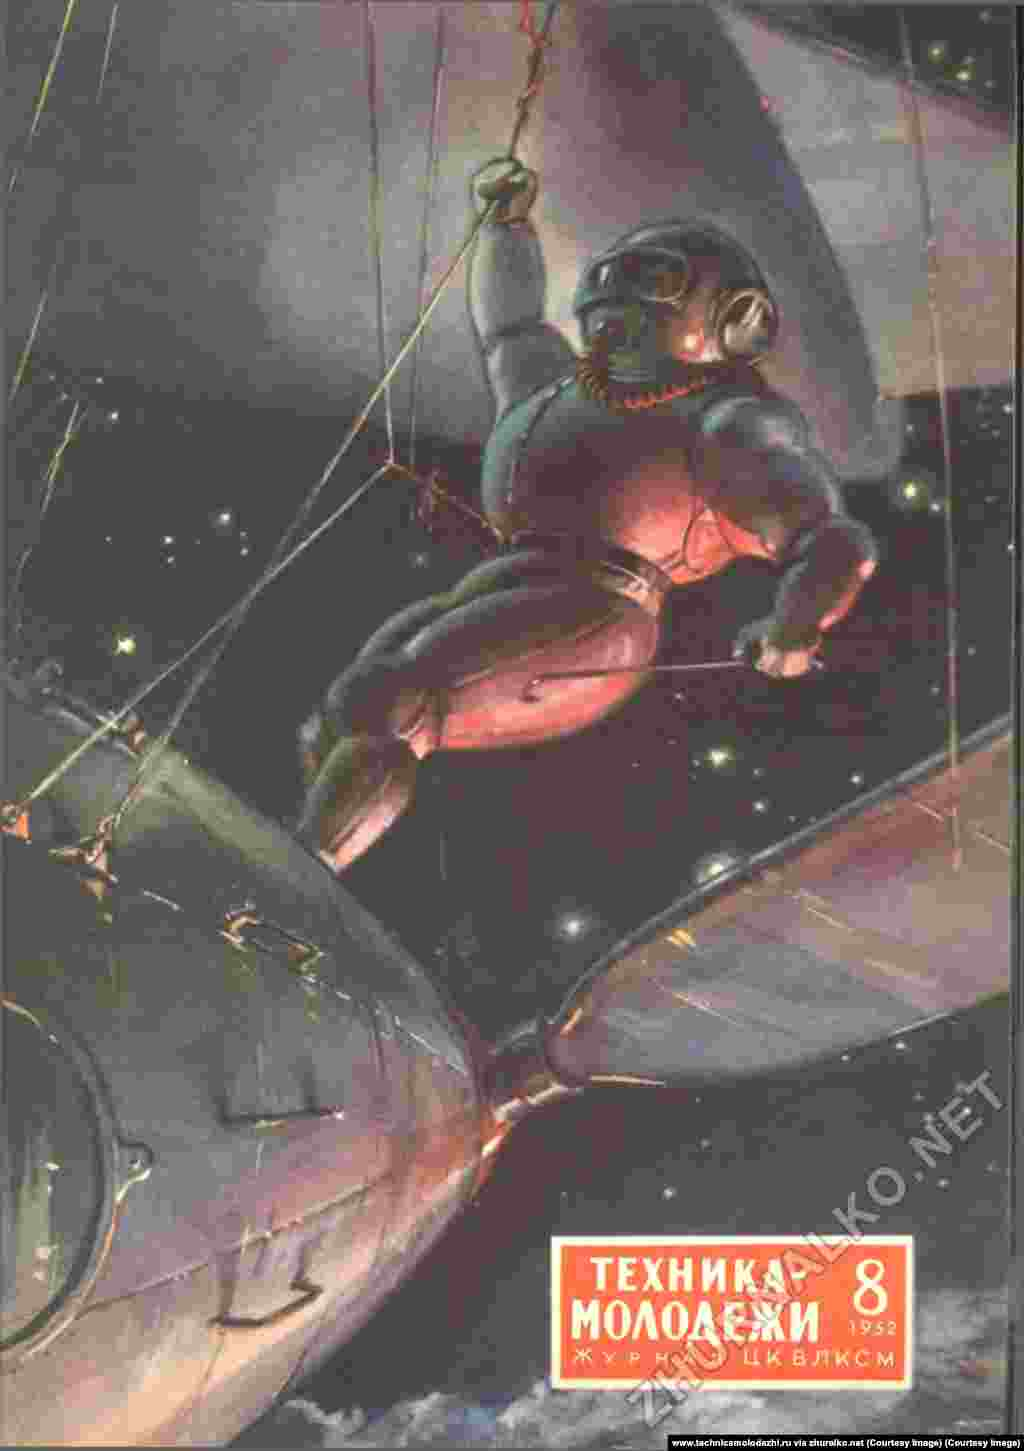 A star sailor adjusting his sails. During the magazine's Soviet heyday, however, not all daring was celebrated. In 1984, Technika Molodezhi's longtime editor was fired after a story by British author Arthur C. Clarke was published in the magazine. The story featured characters named after Soviet dissidents.